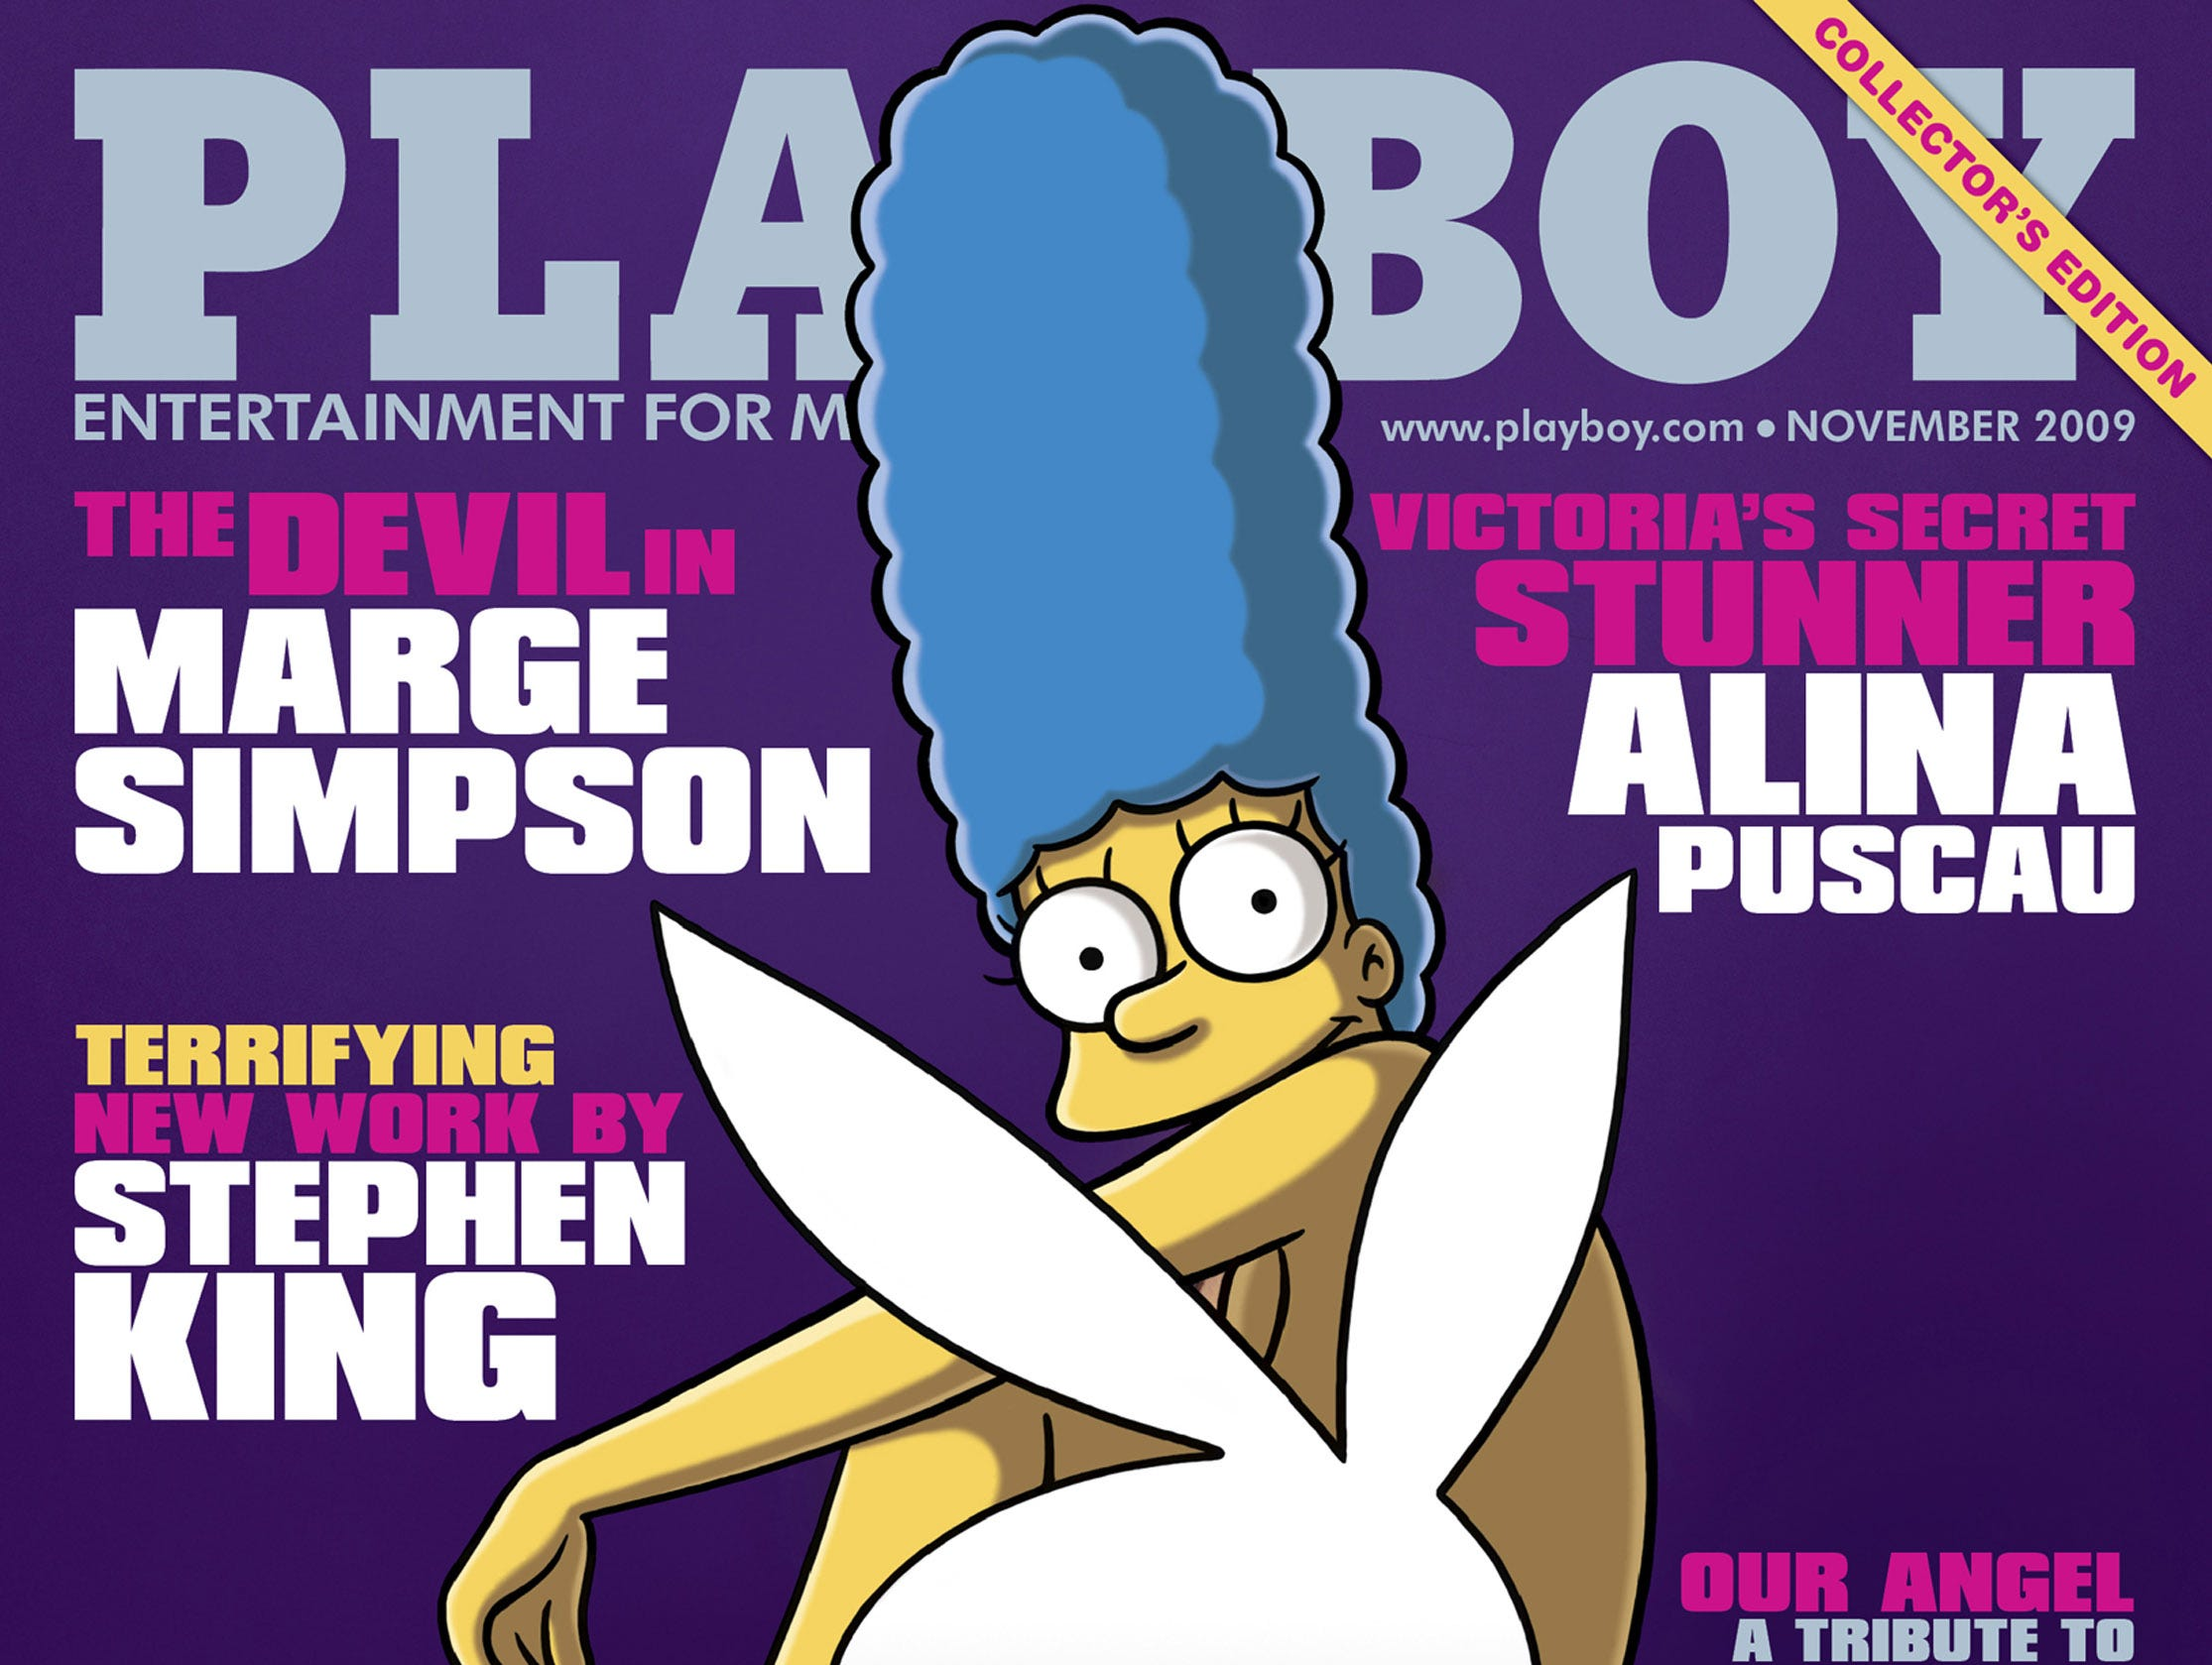 This image released by Playboy Enterprises, Inc. shows Playboy magazine's November 2009 featuring cartoon character Marge Simpson. Marge is the first cartoon given the honor to appear on the cover of the famed men's publication. The magazine will go on sale October 16 2009.     AFP PHOTO/Playboy Enterprises, Inc.     = NO SALES = RESTRICTED TO EDITORIAL USE = (Photo credit should read -/AFP/Getty Images)